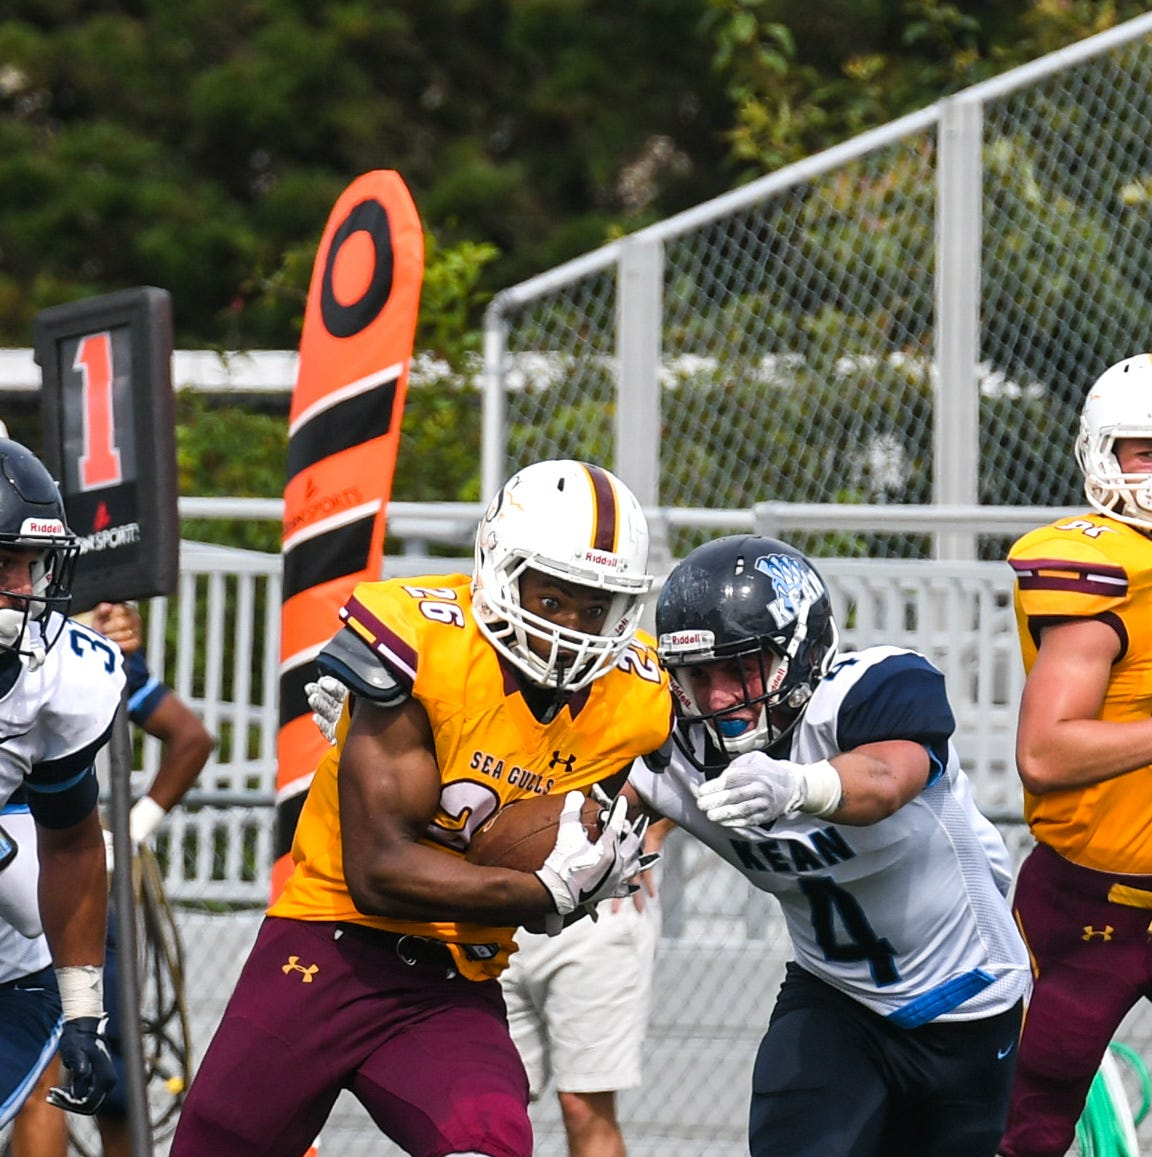 Salisbury football stays undefeated in overtime win